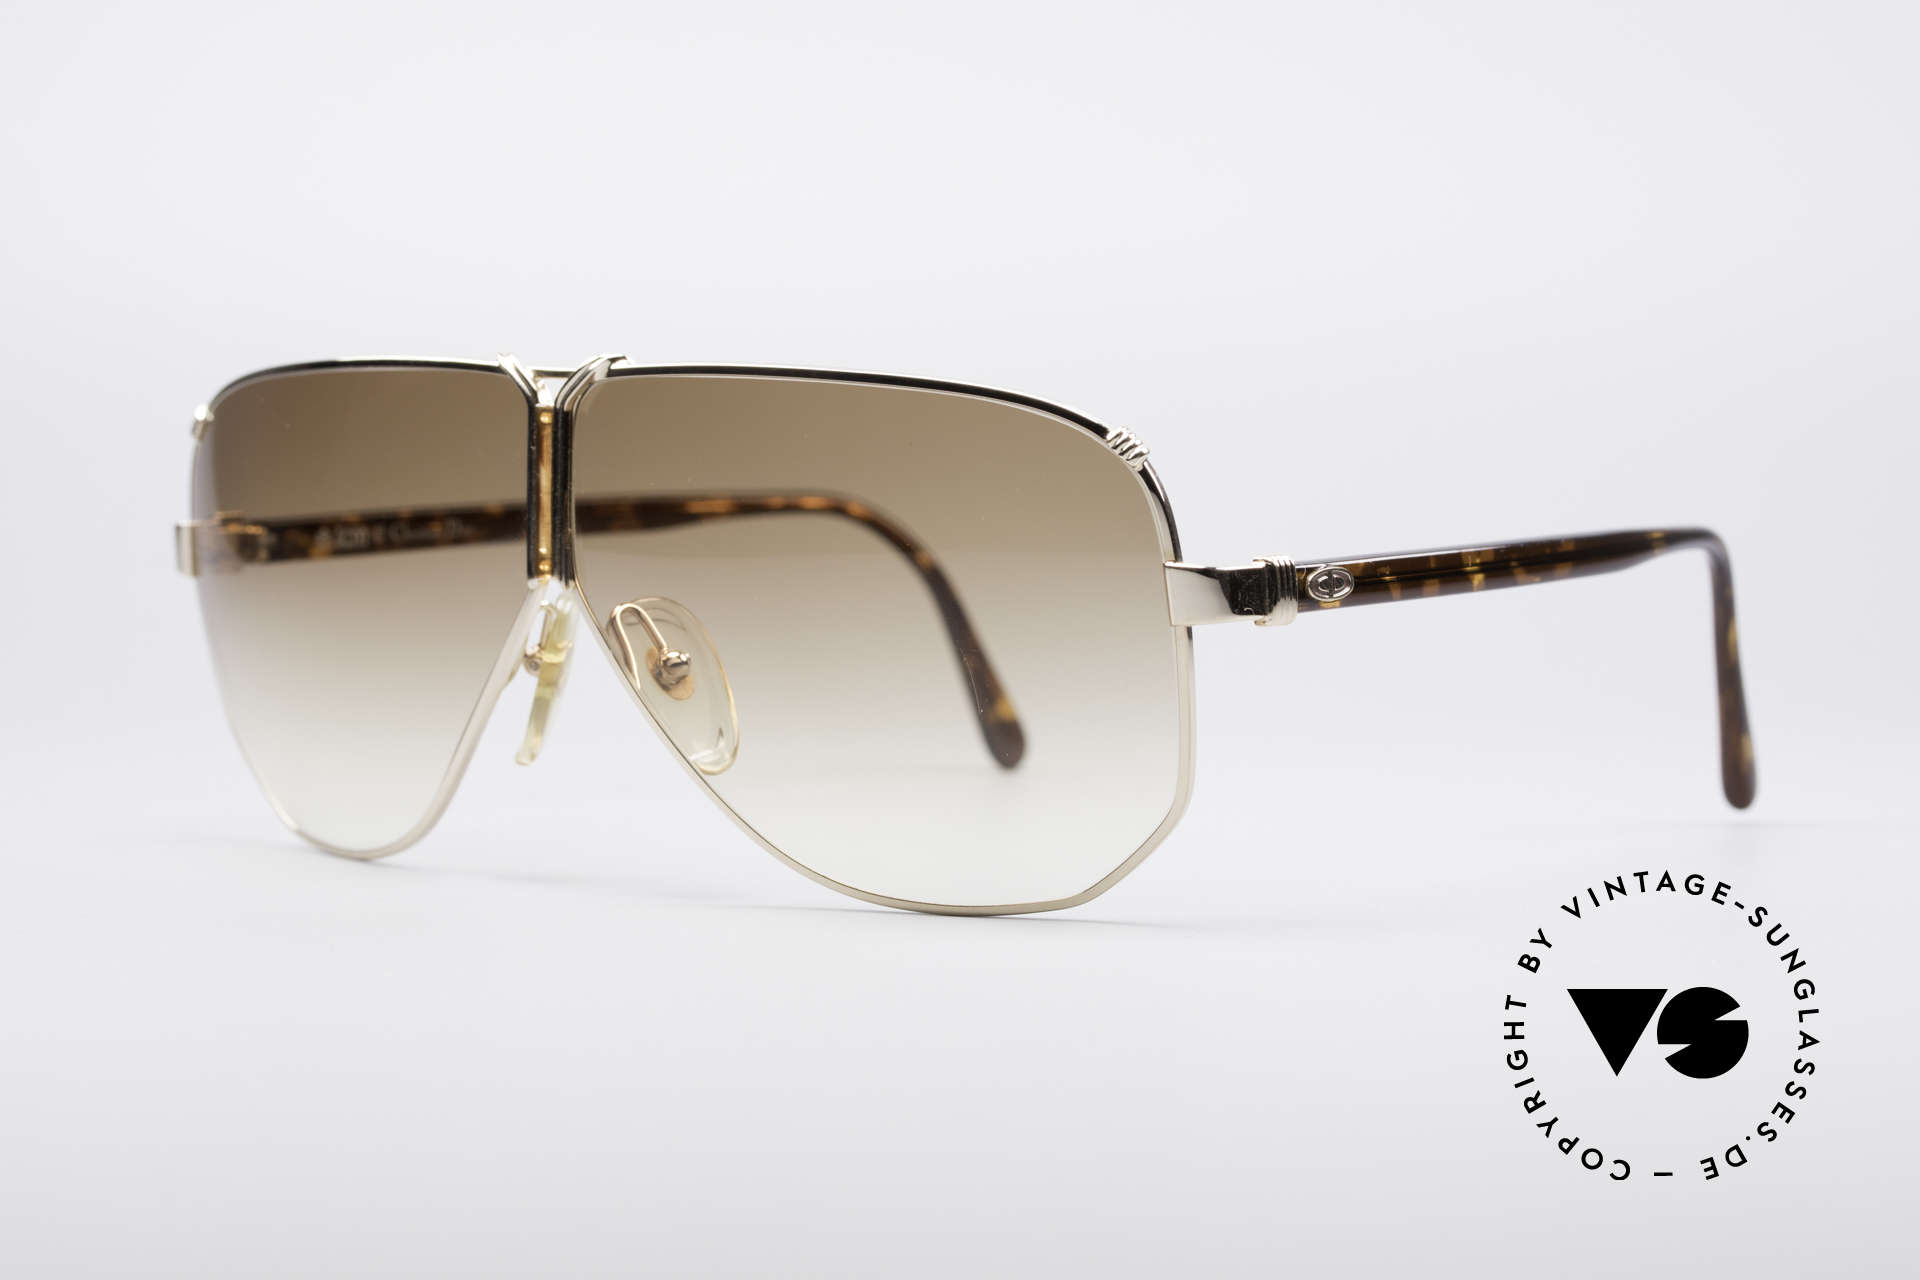 Christian Dior 2502 Panorama View Shades XXL, top-notch craftsmanship and 100% UV protection, Made for Men